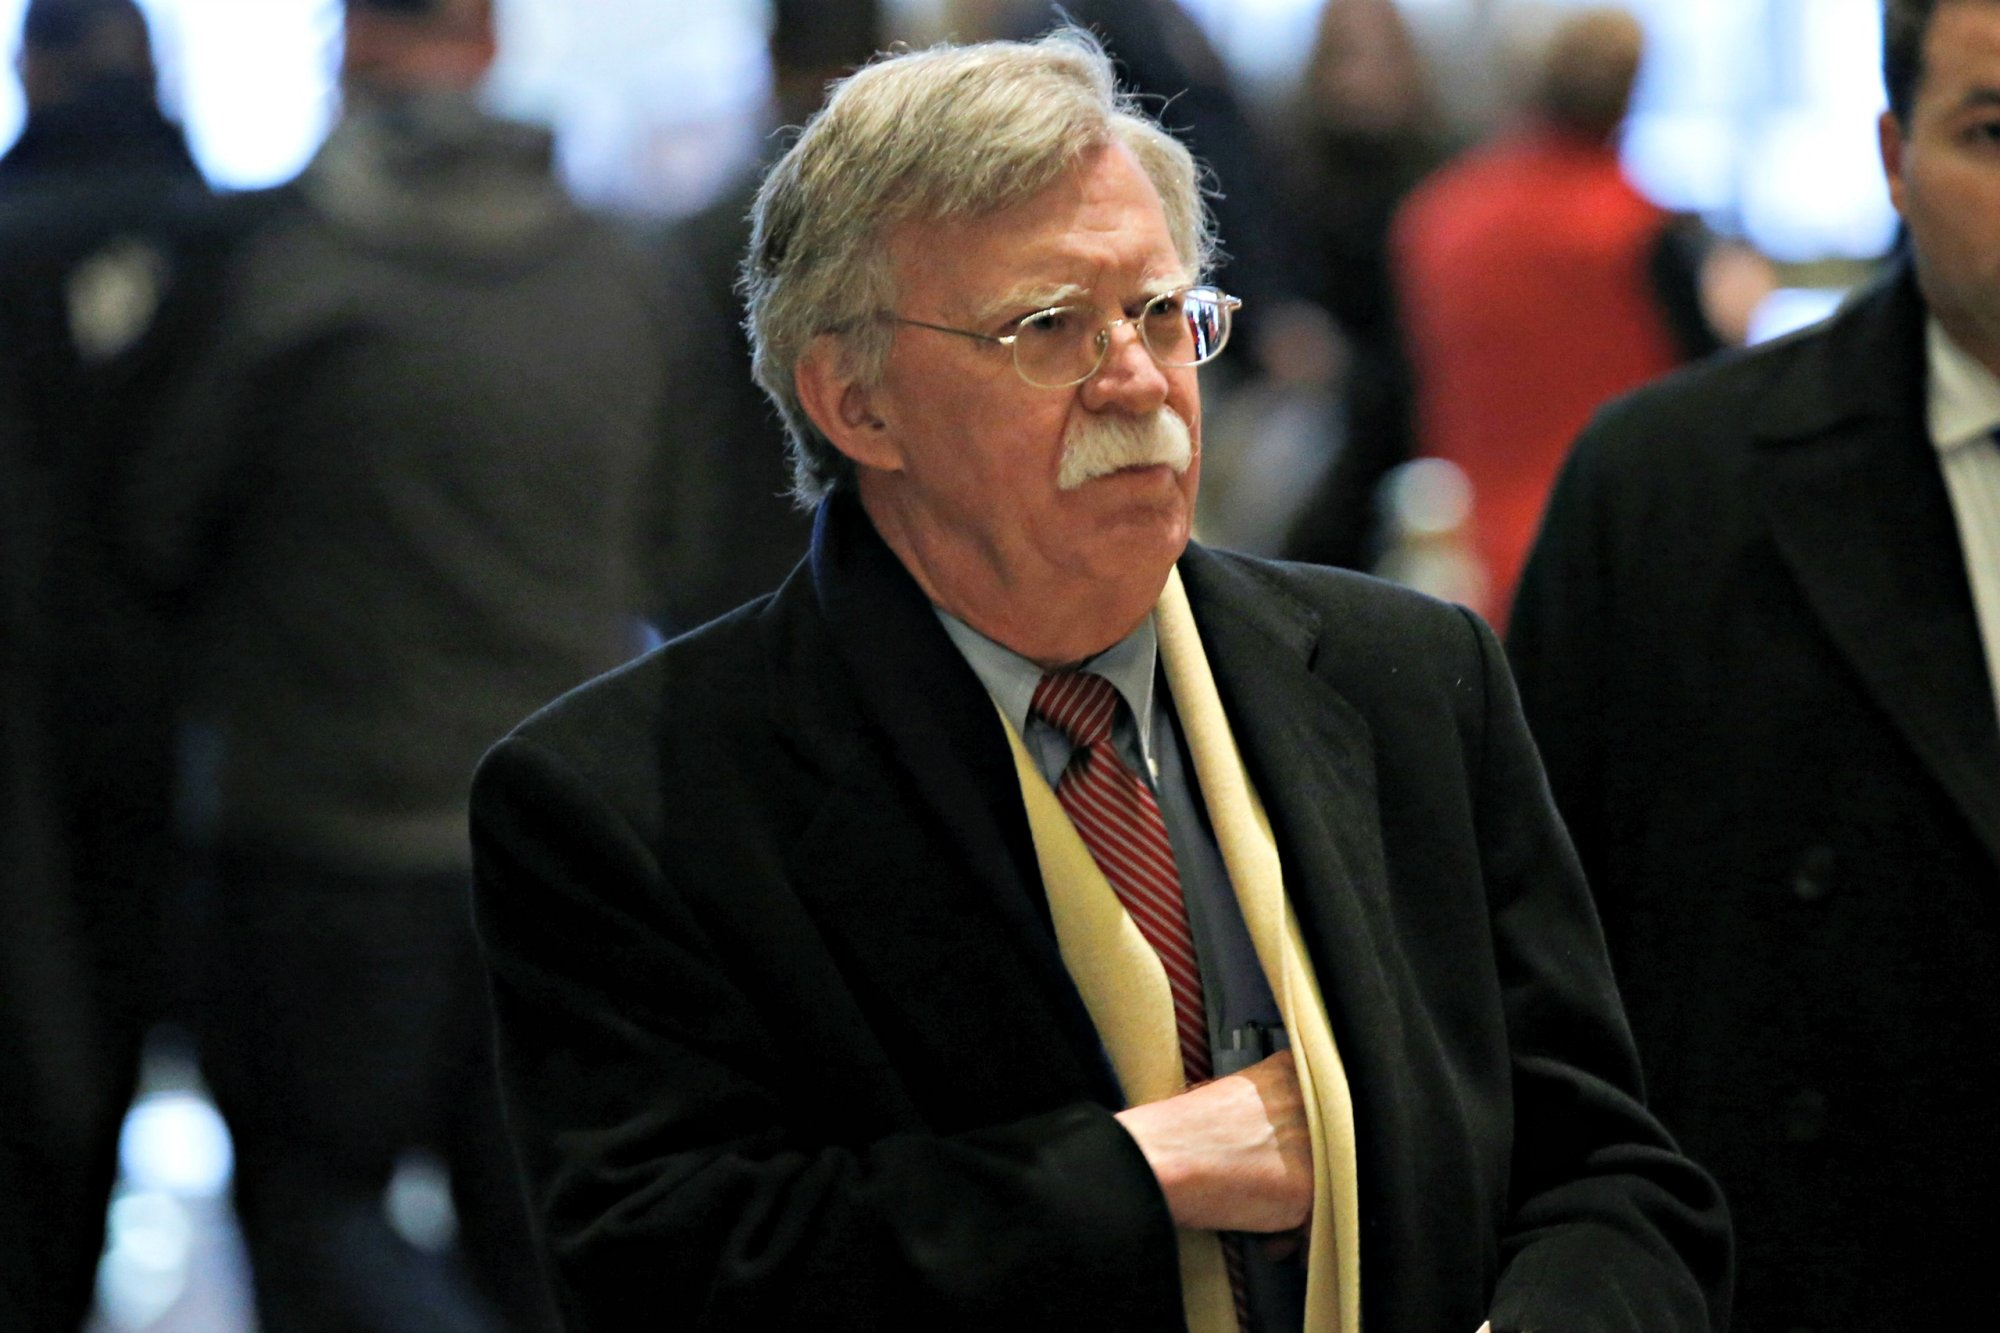 John Bolton Outlines His Five Foreign Policy Points For The Trump Admin